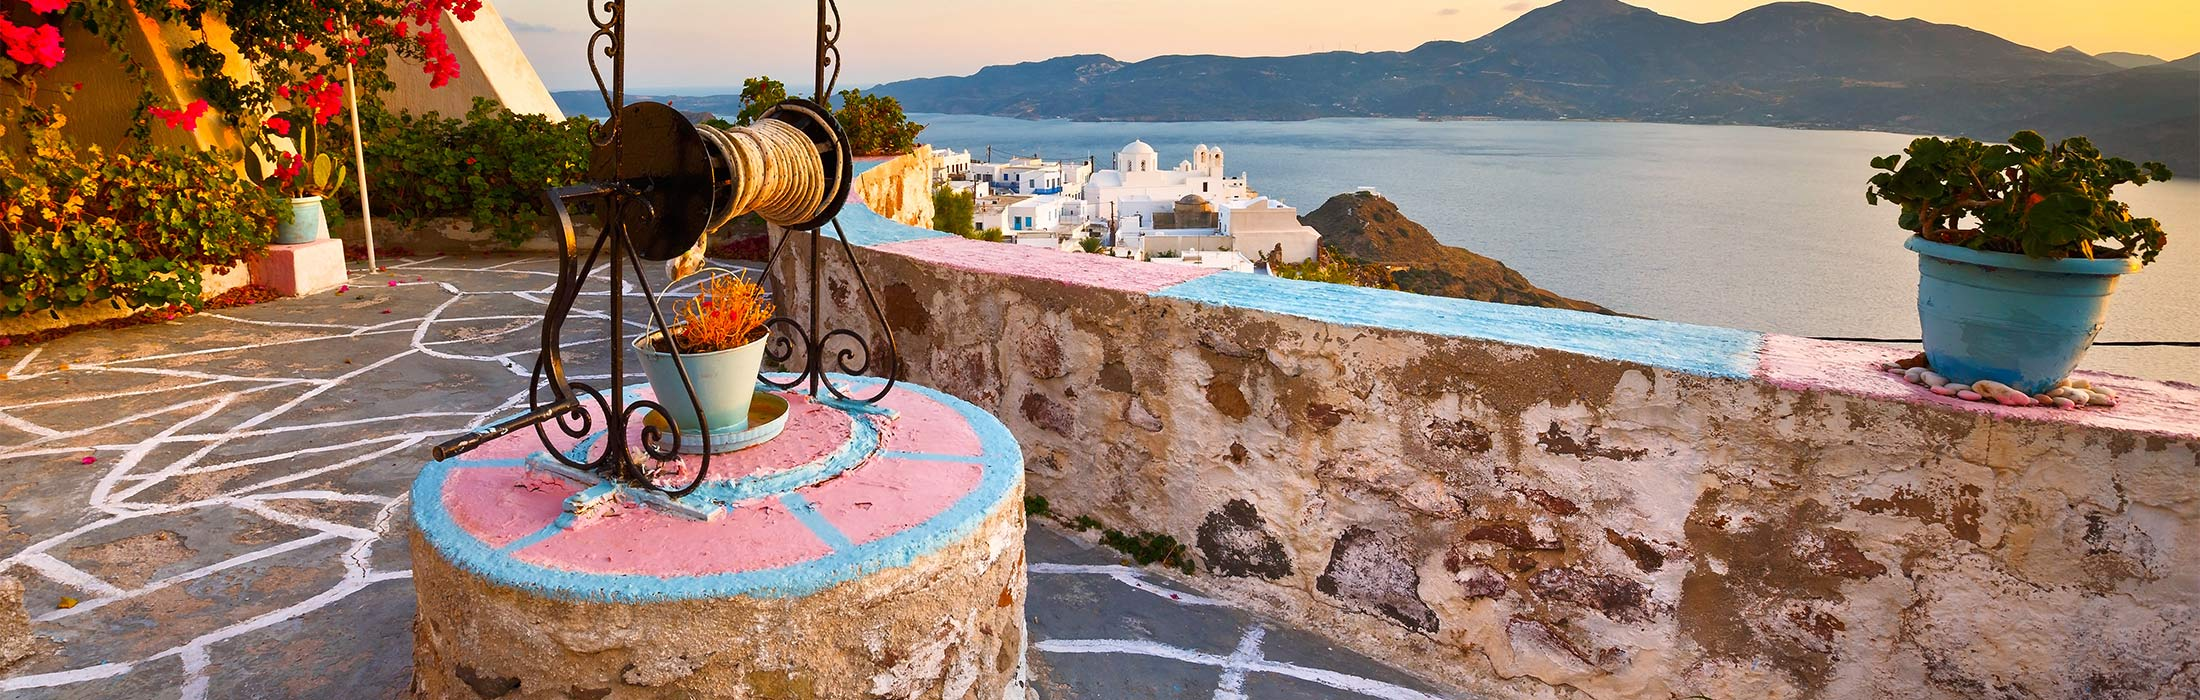 top yacht charter destinations mediterranean greece cyclades milos main slider 1